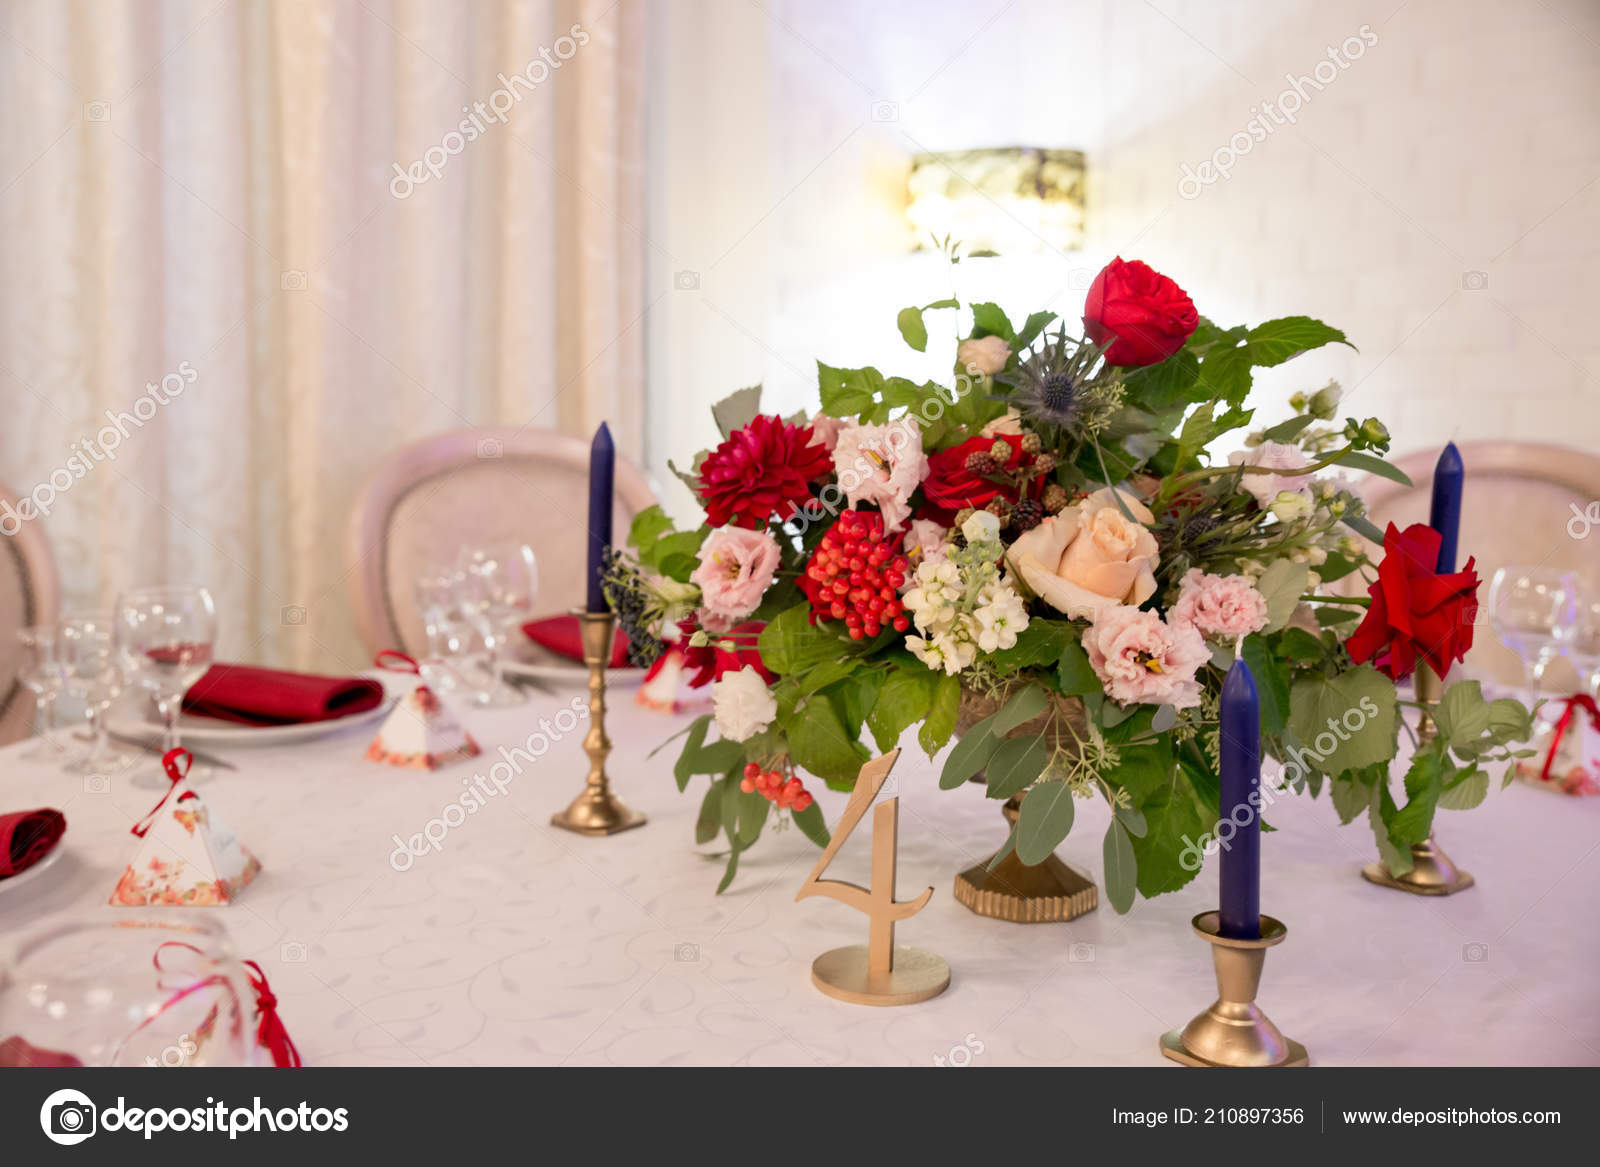 Red and white table settings for weddings